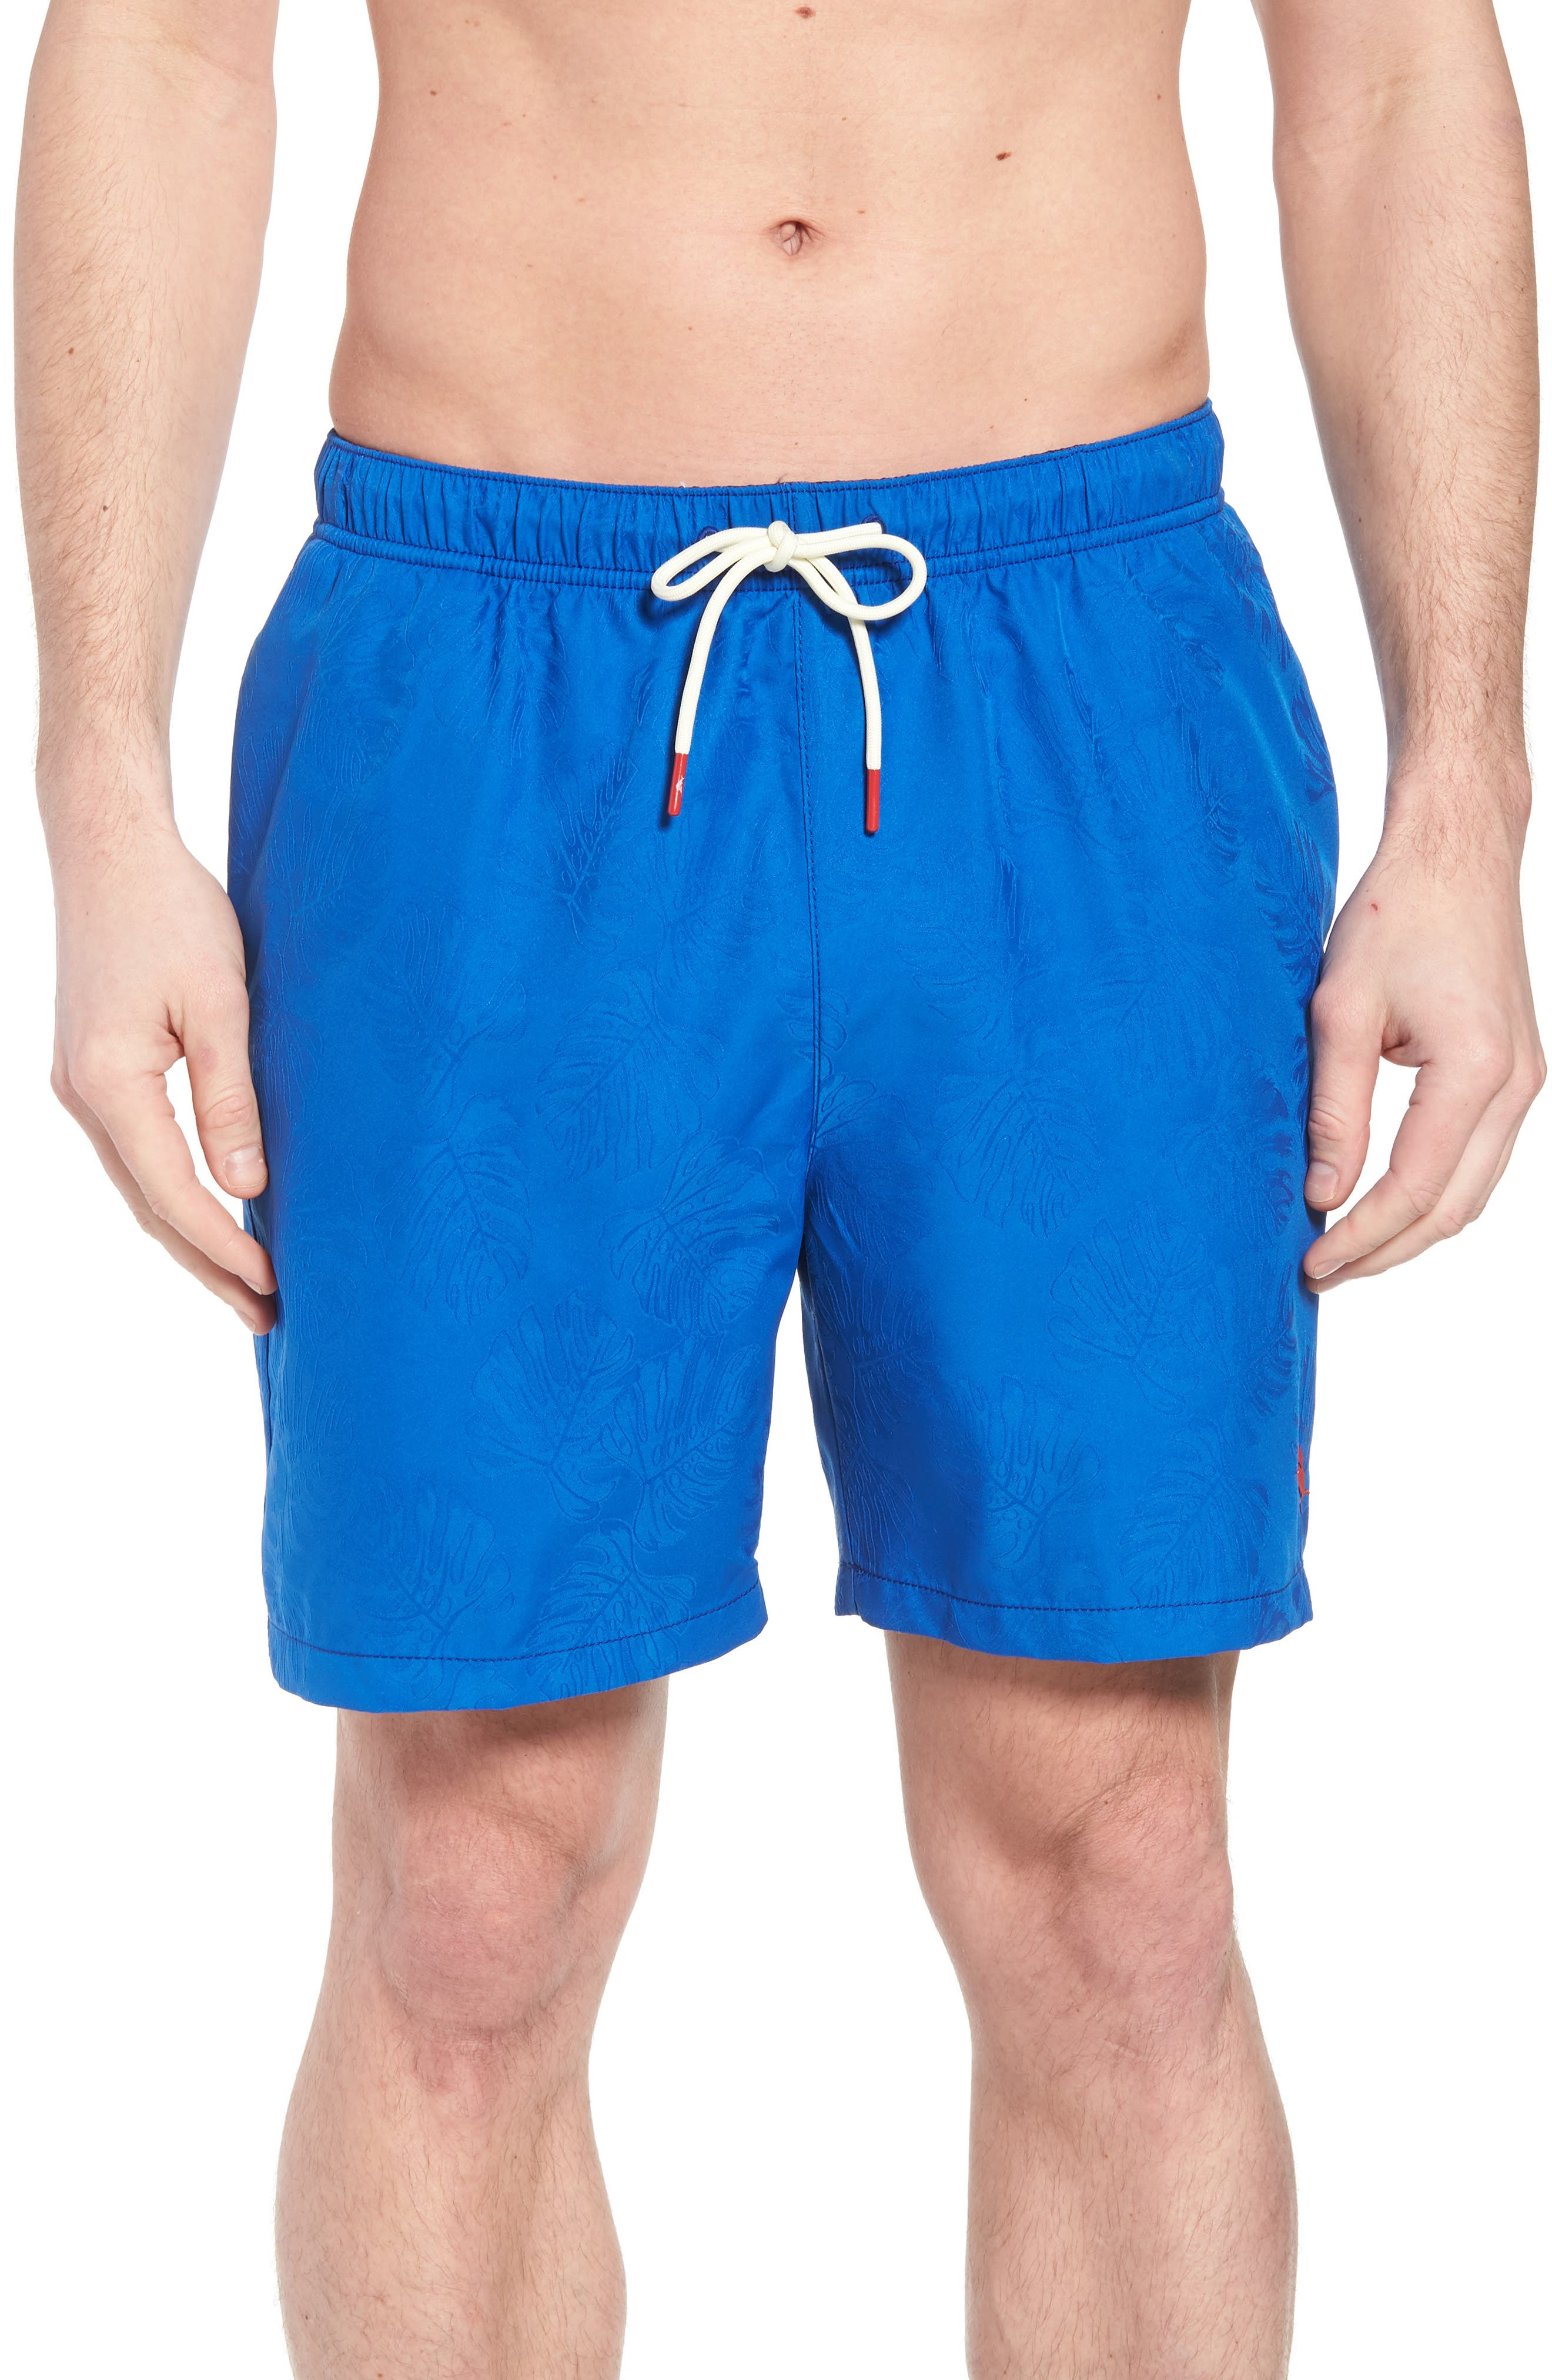 Naples Midnight Monstera Swim Trunks,                             Main thumbnail 1, color,                             Cobalt Sea